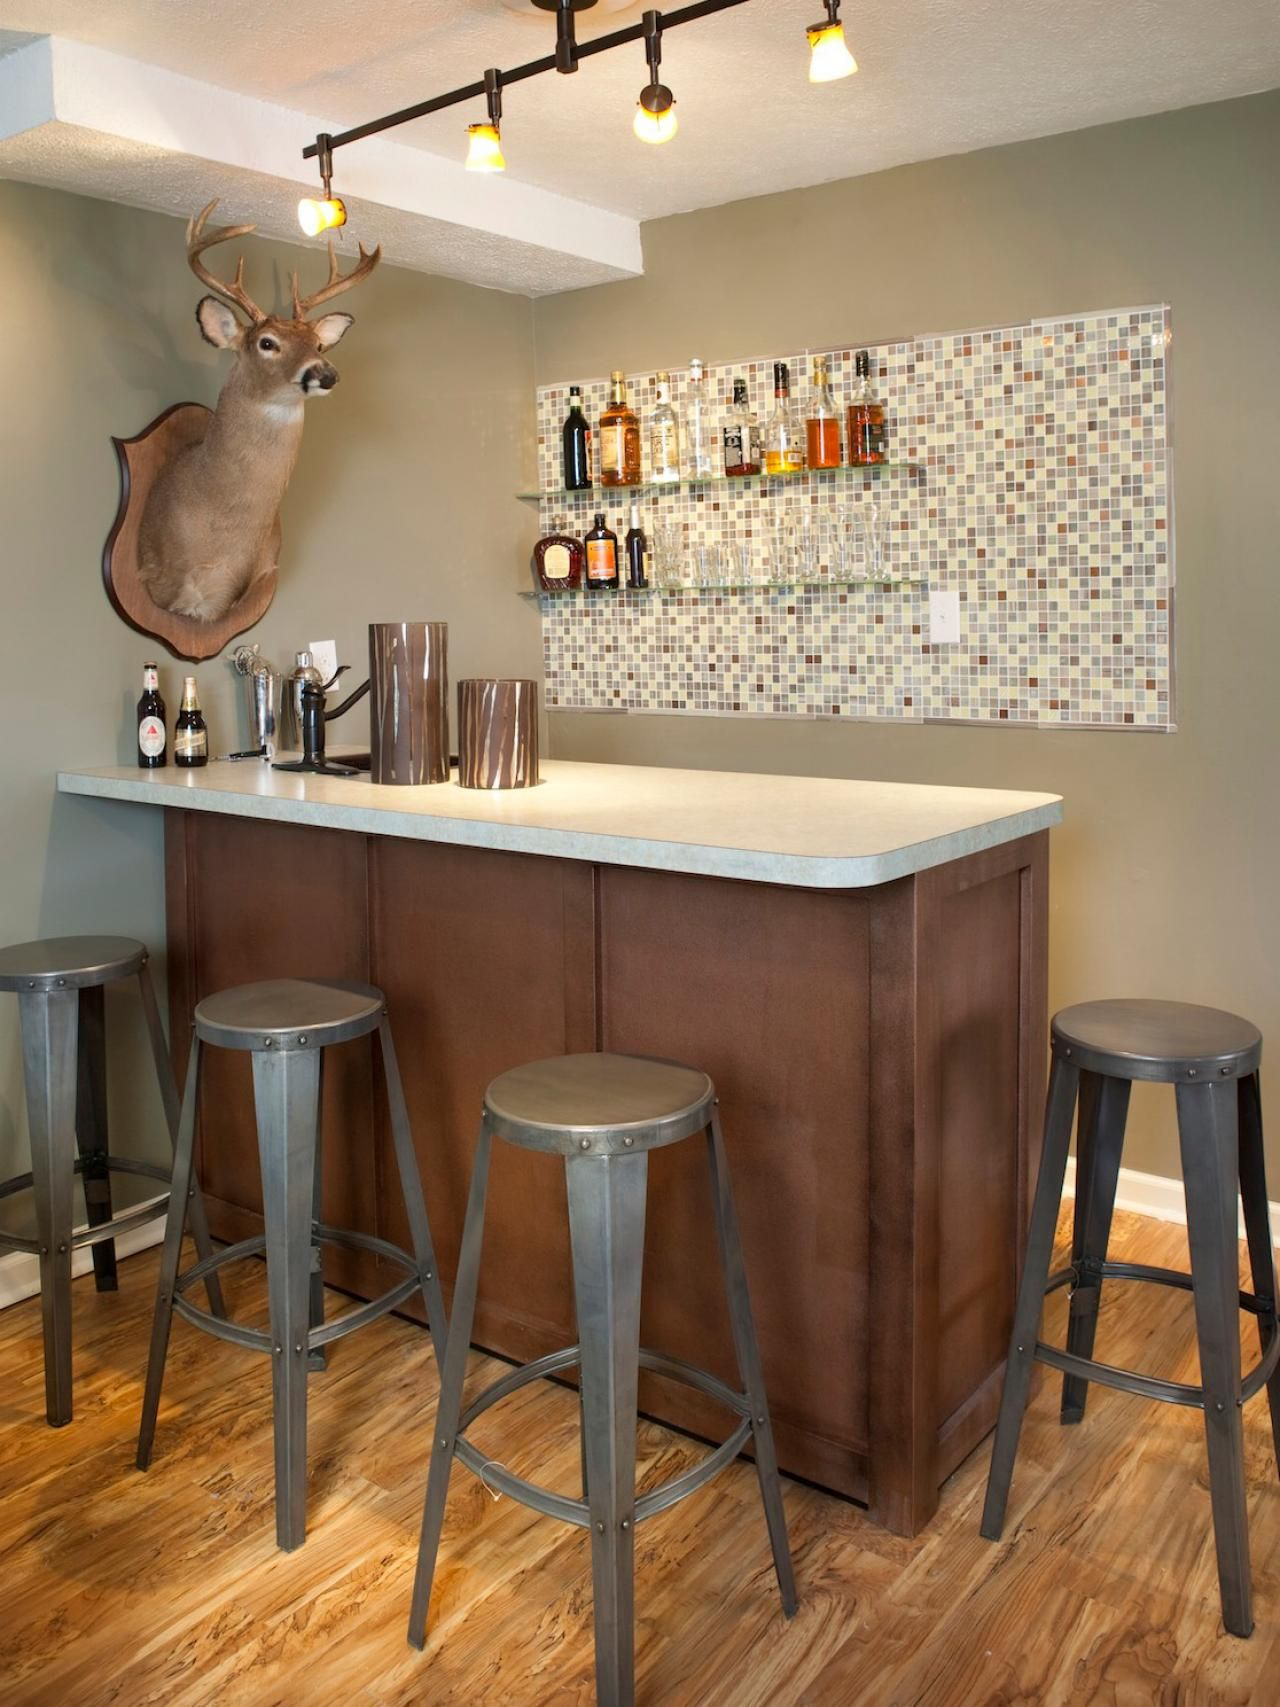 Basement Bar Ideas And Designs Pictures Options Amp Tips Home Bar Designs Small Bars For Home